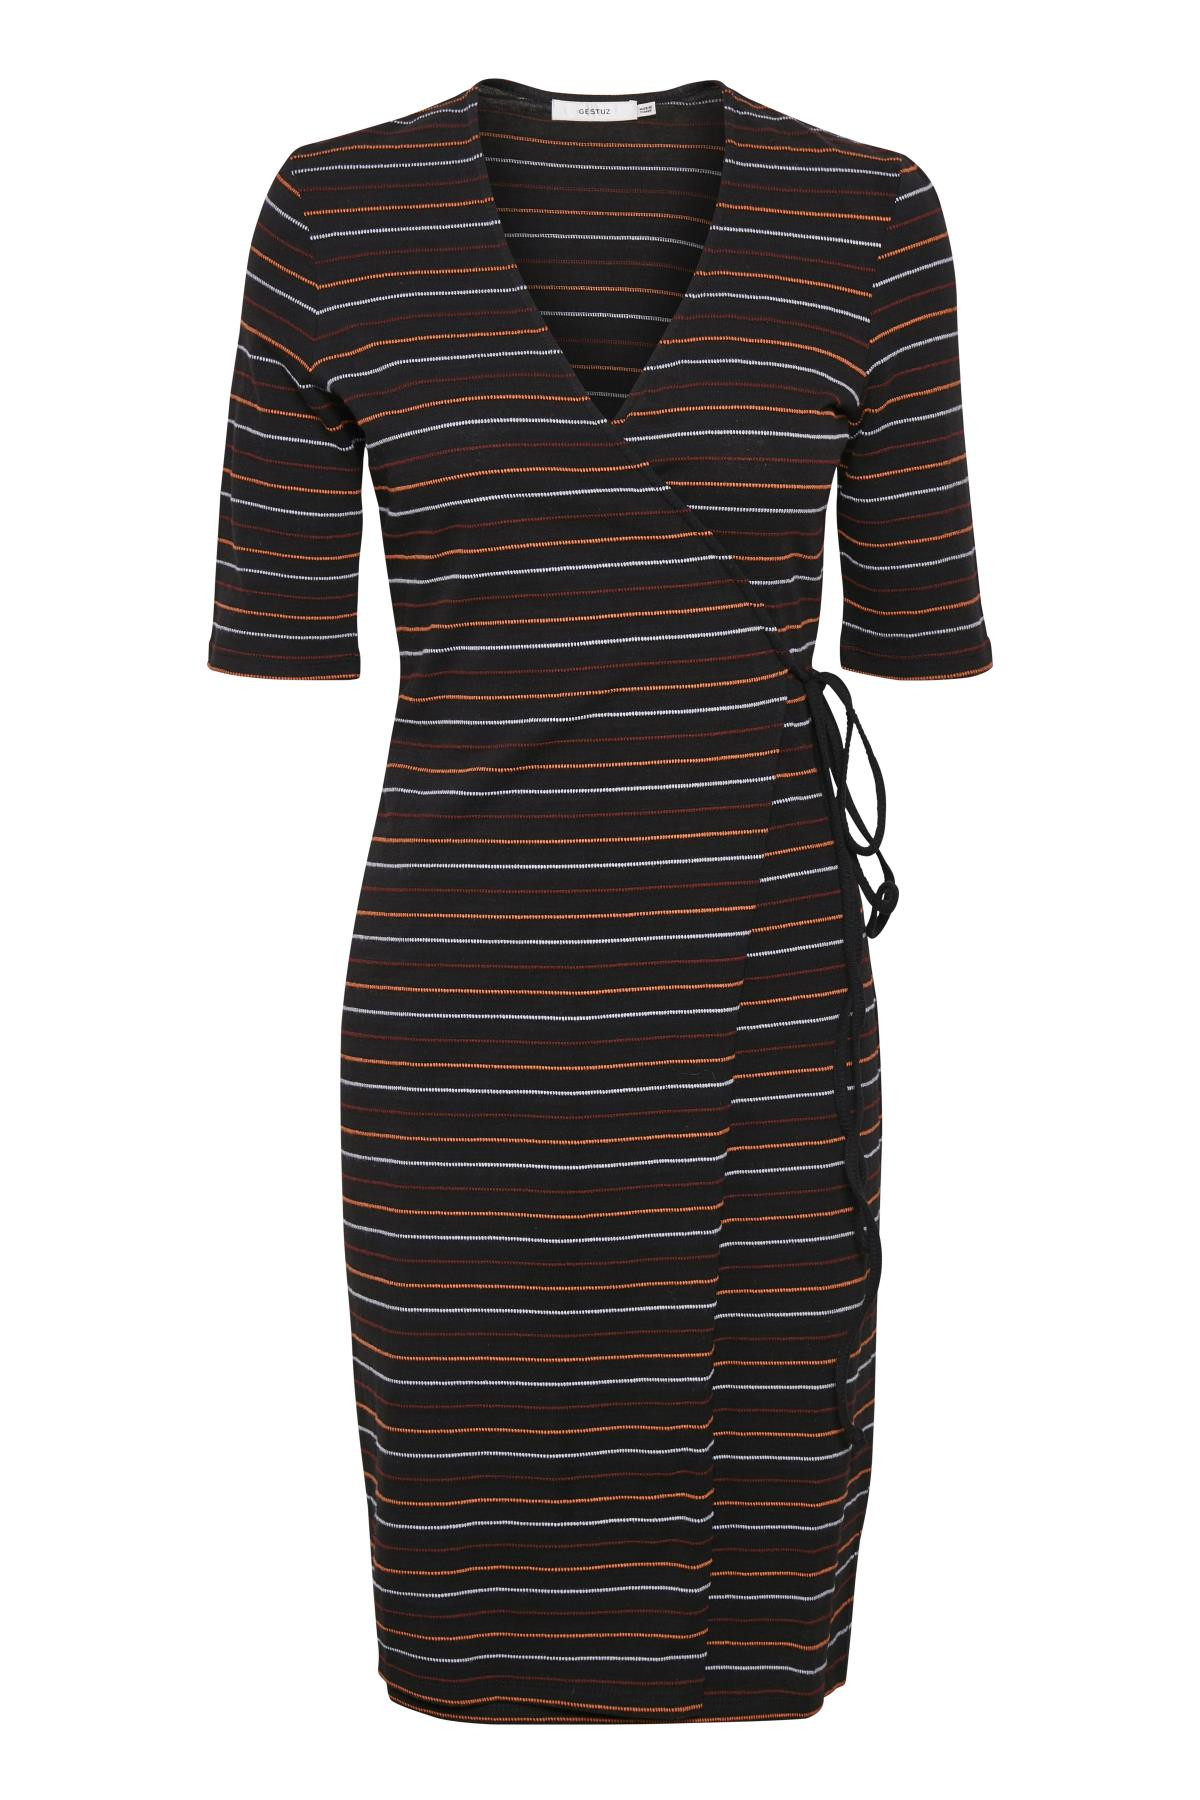 Image of   GESTUZ TERRIGZ SLÅ-OM KJOLE 10903453 (Black W. Stripes 90616, XS)